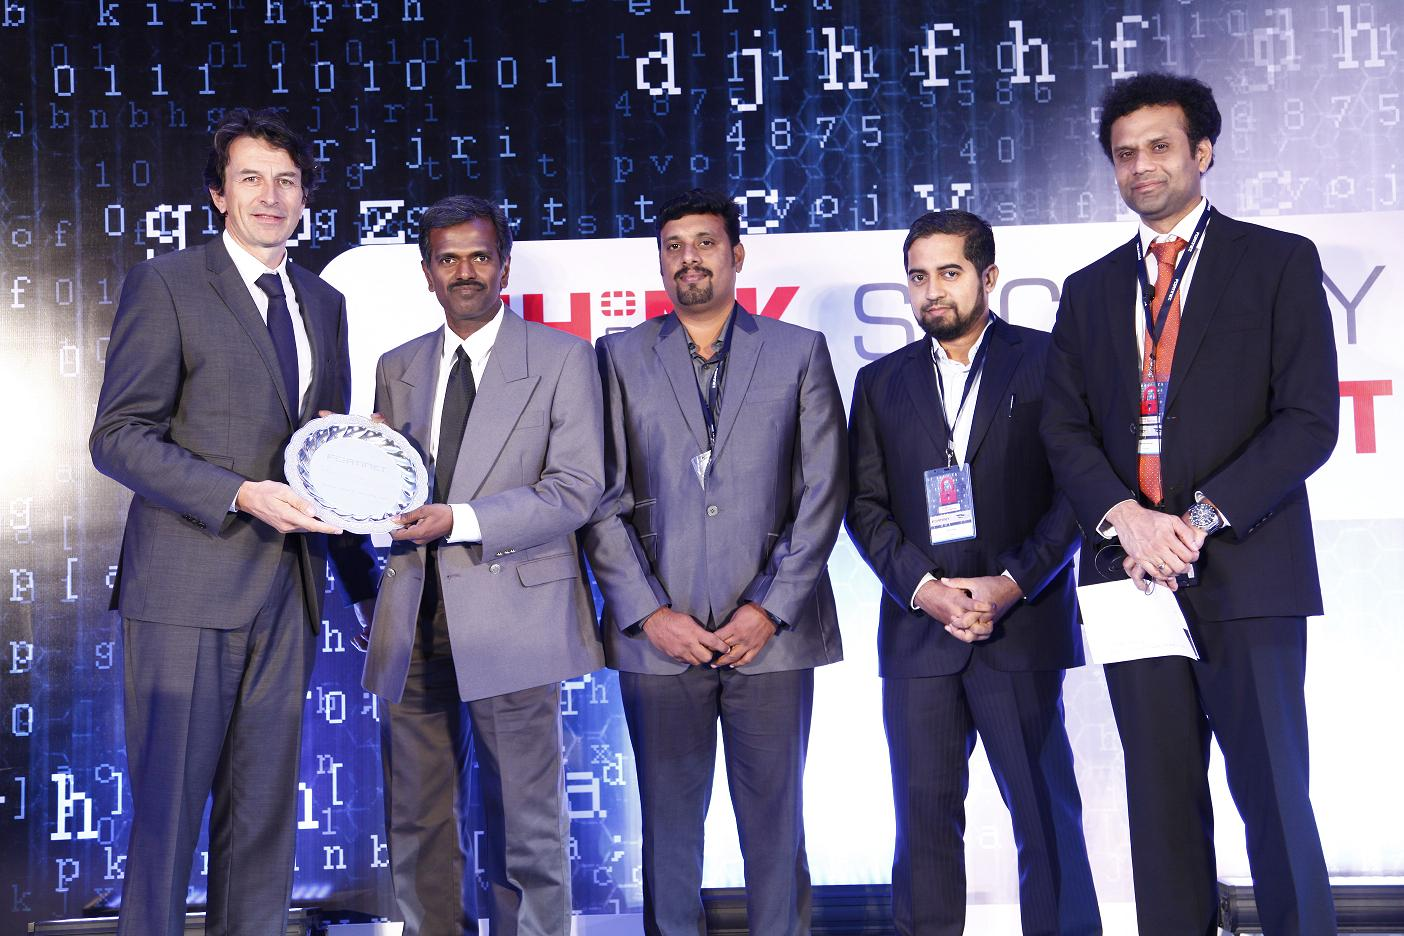 Sendil Kumar, AVP - IT Infrastructure and Datacenter,Shriram Group (second from left) receiving the award from Patrice Perche, Senior Vice President, International Sales and Support, Fortinet.